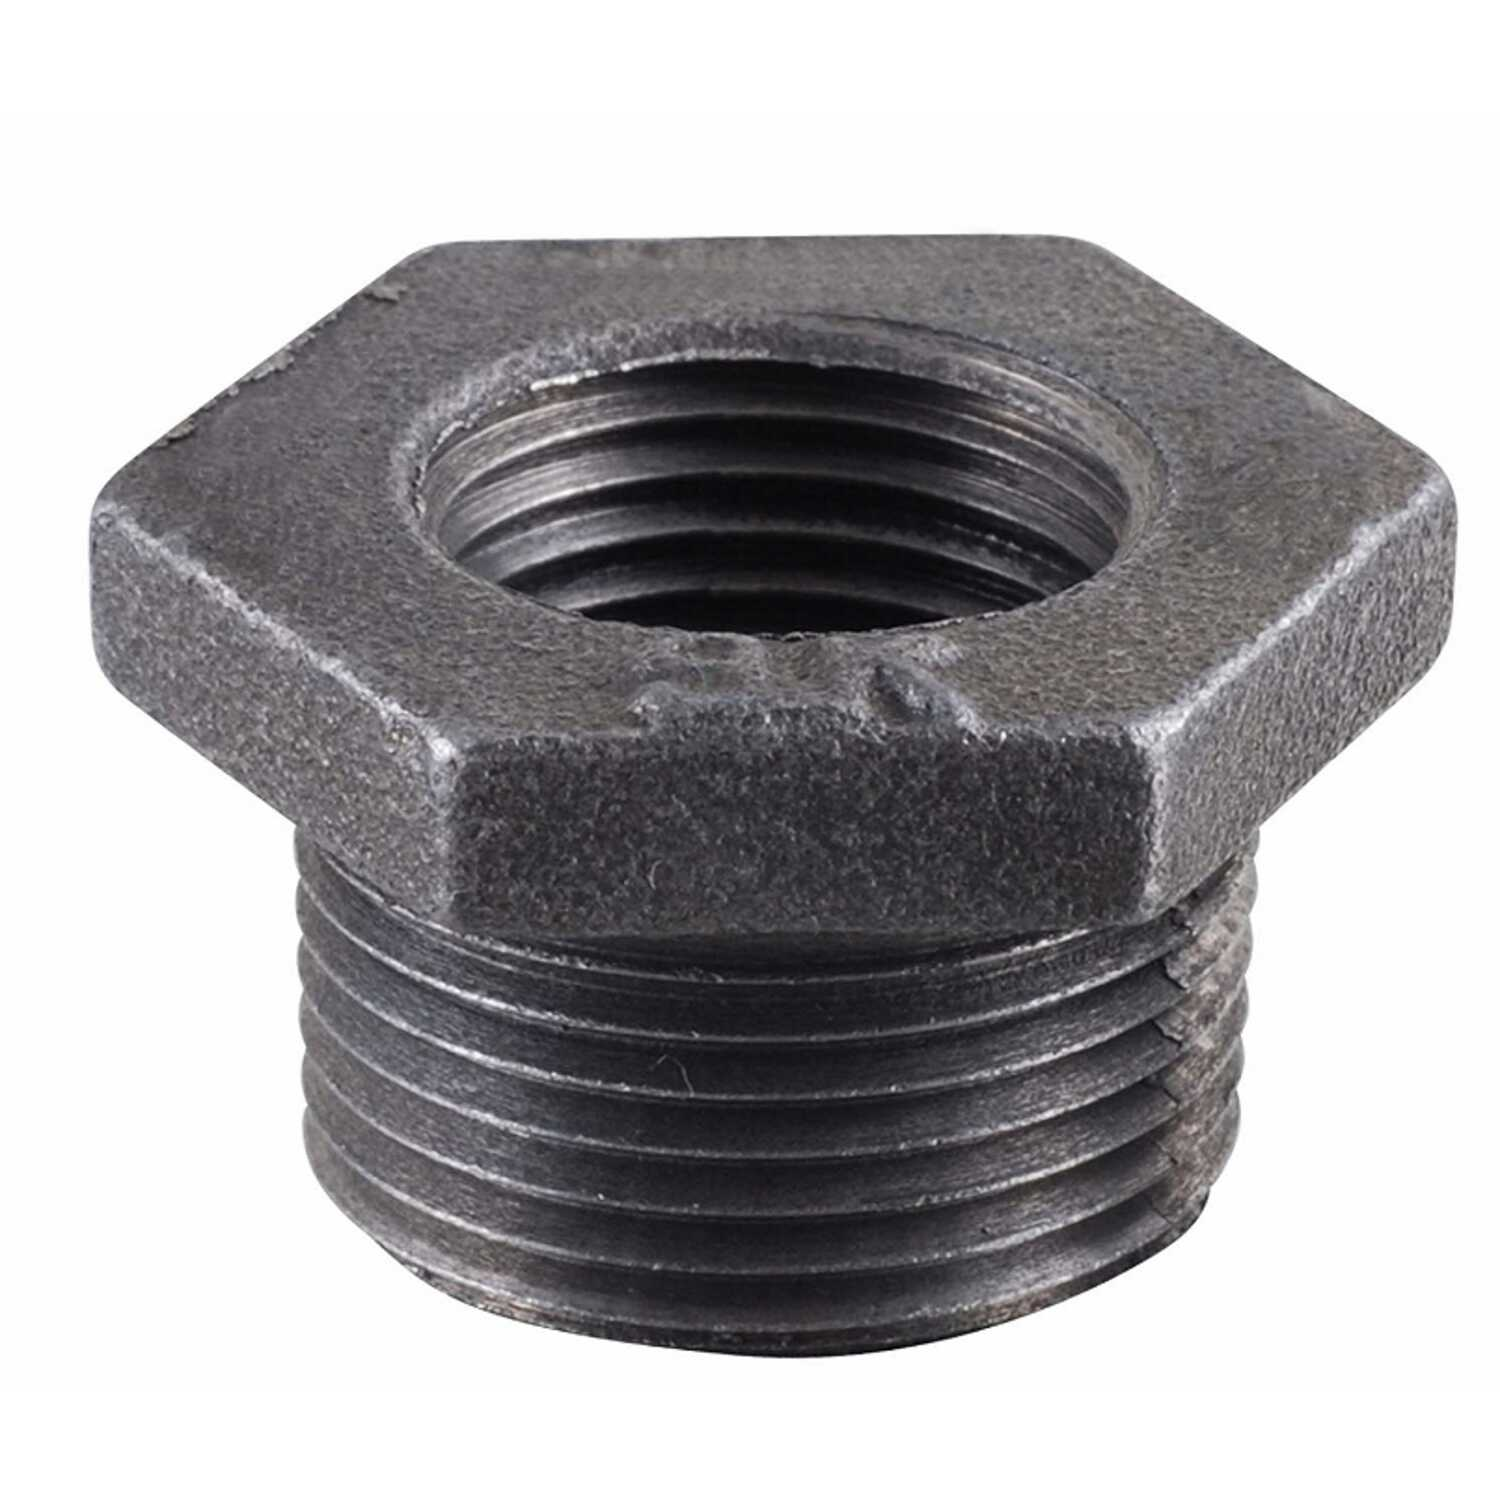 BK Products  1/2 in. MPT   x 1-1/2 in. Dia. FPT  Black  Malleable Iron  Hex Bushing